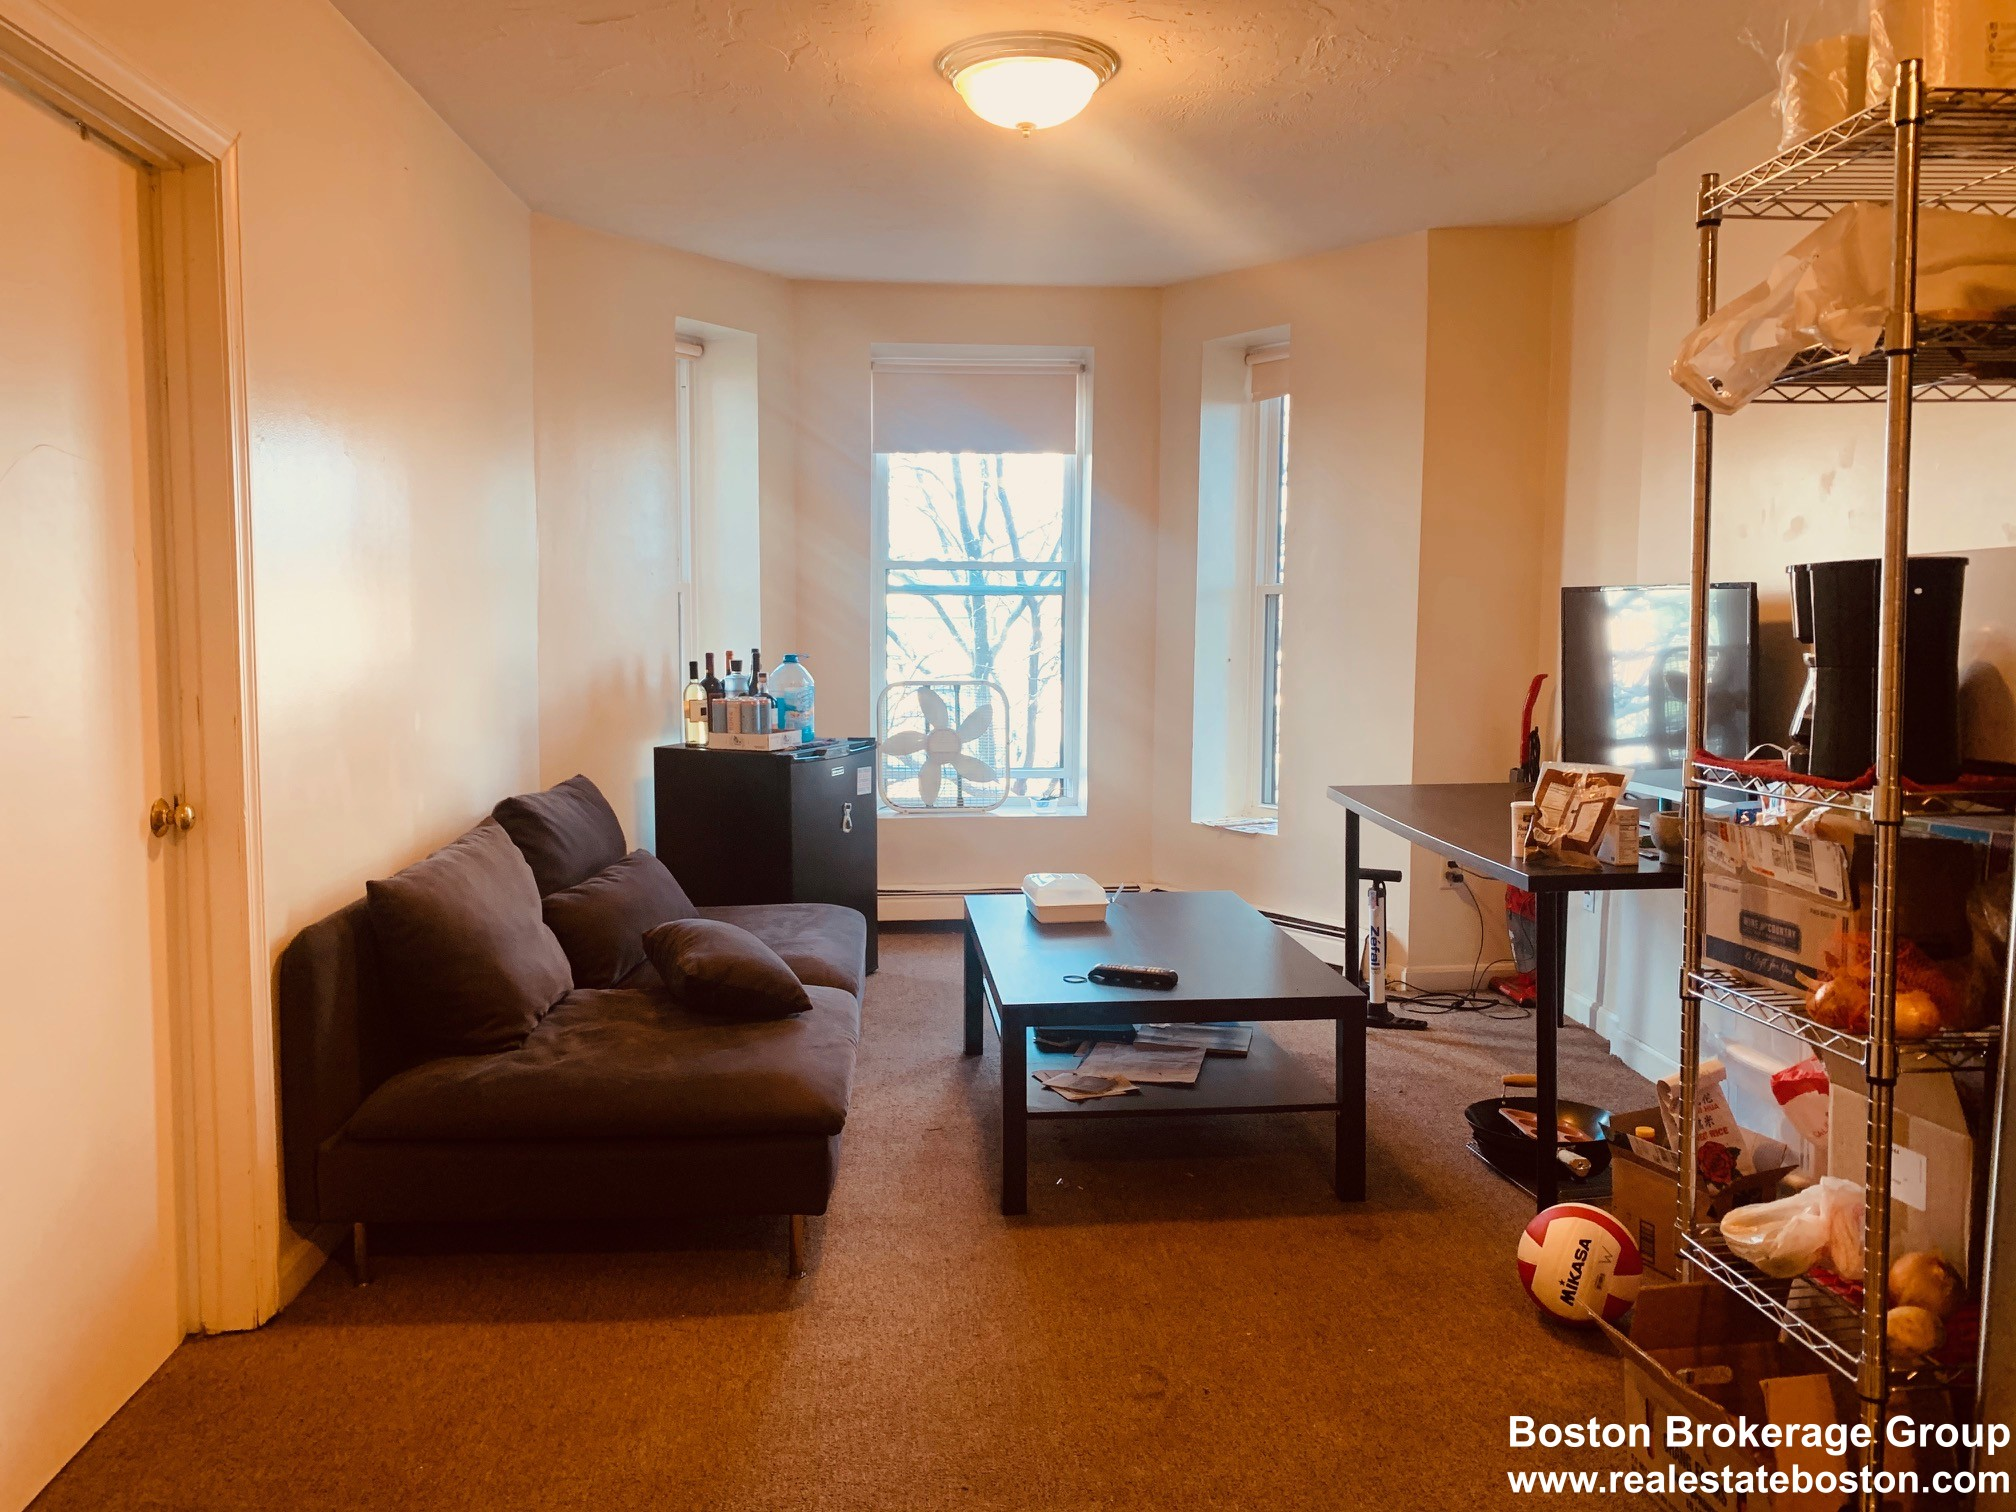 Photos of apartment on Hammond St.,Boston MA 02120